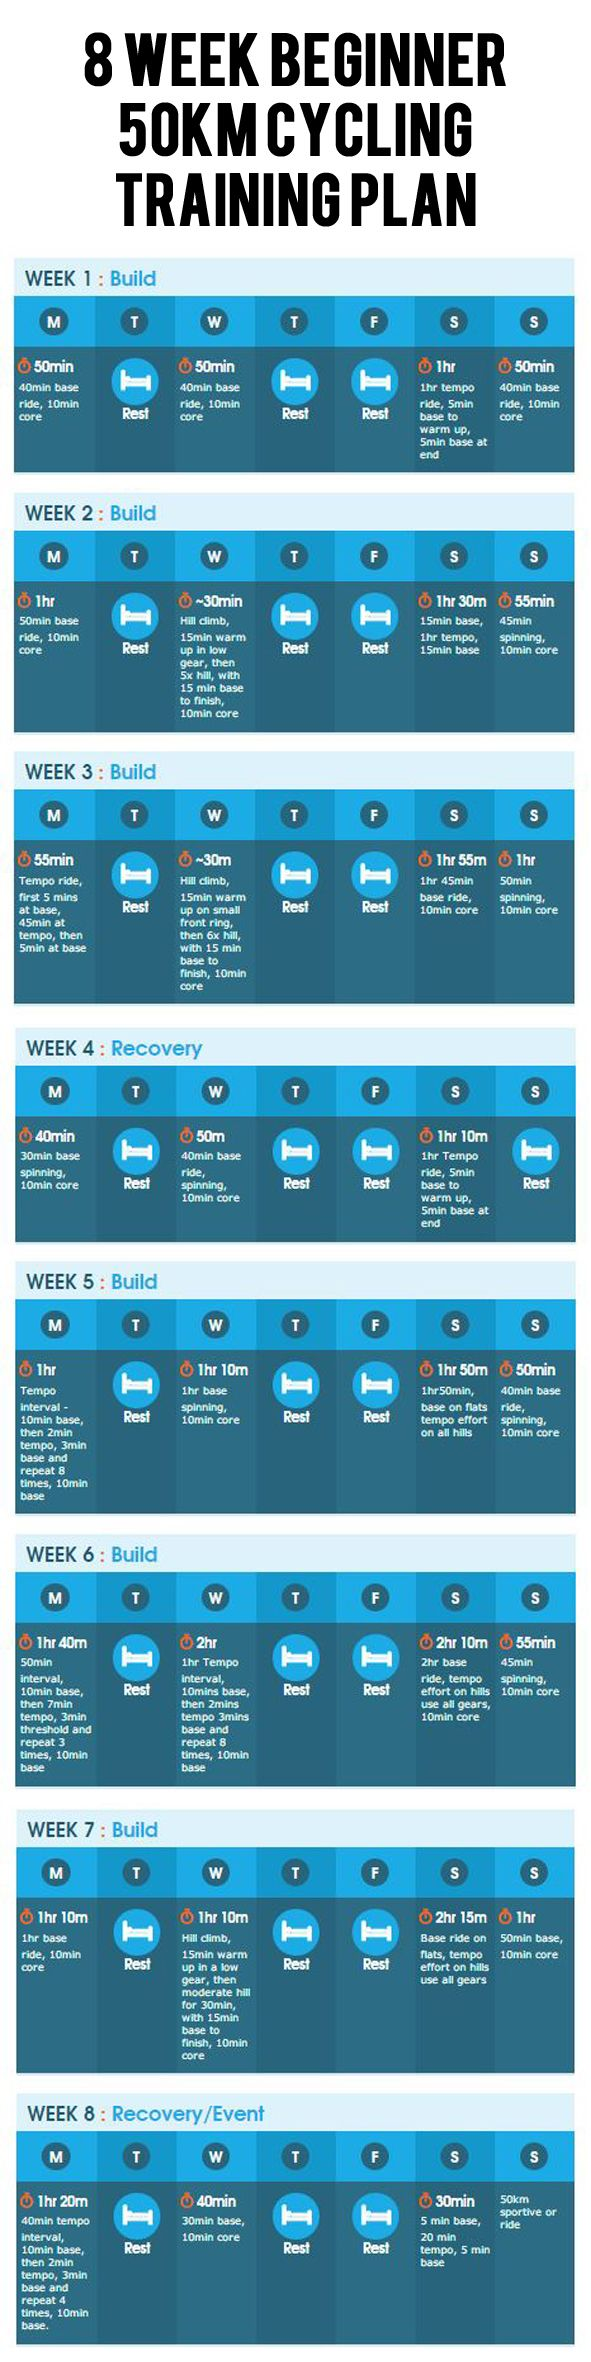 8 WEEK BEGINNER 50KM CYCLING TRAINING PLAN. 50k cycling bike bicycle